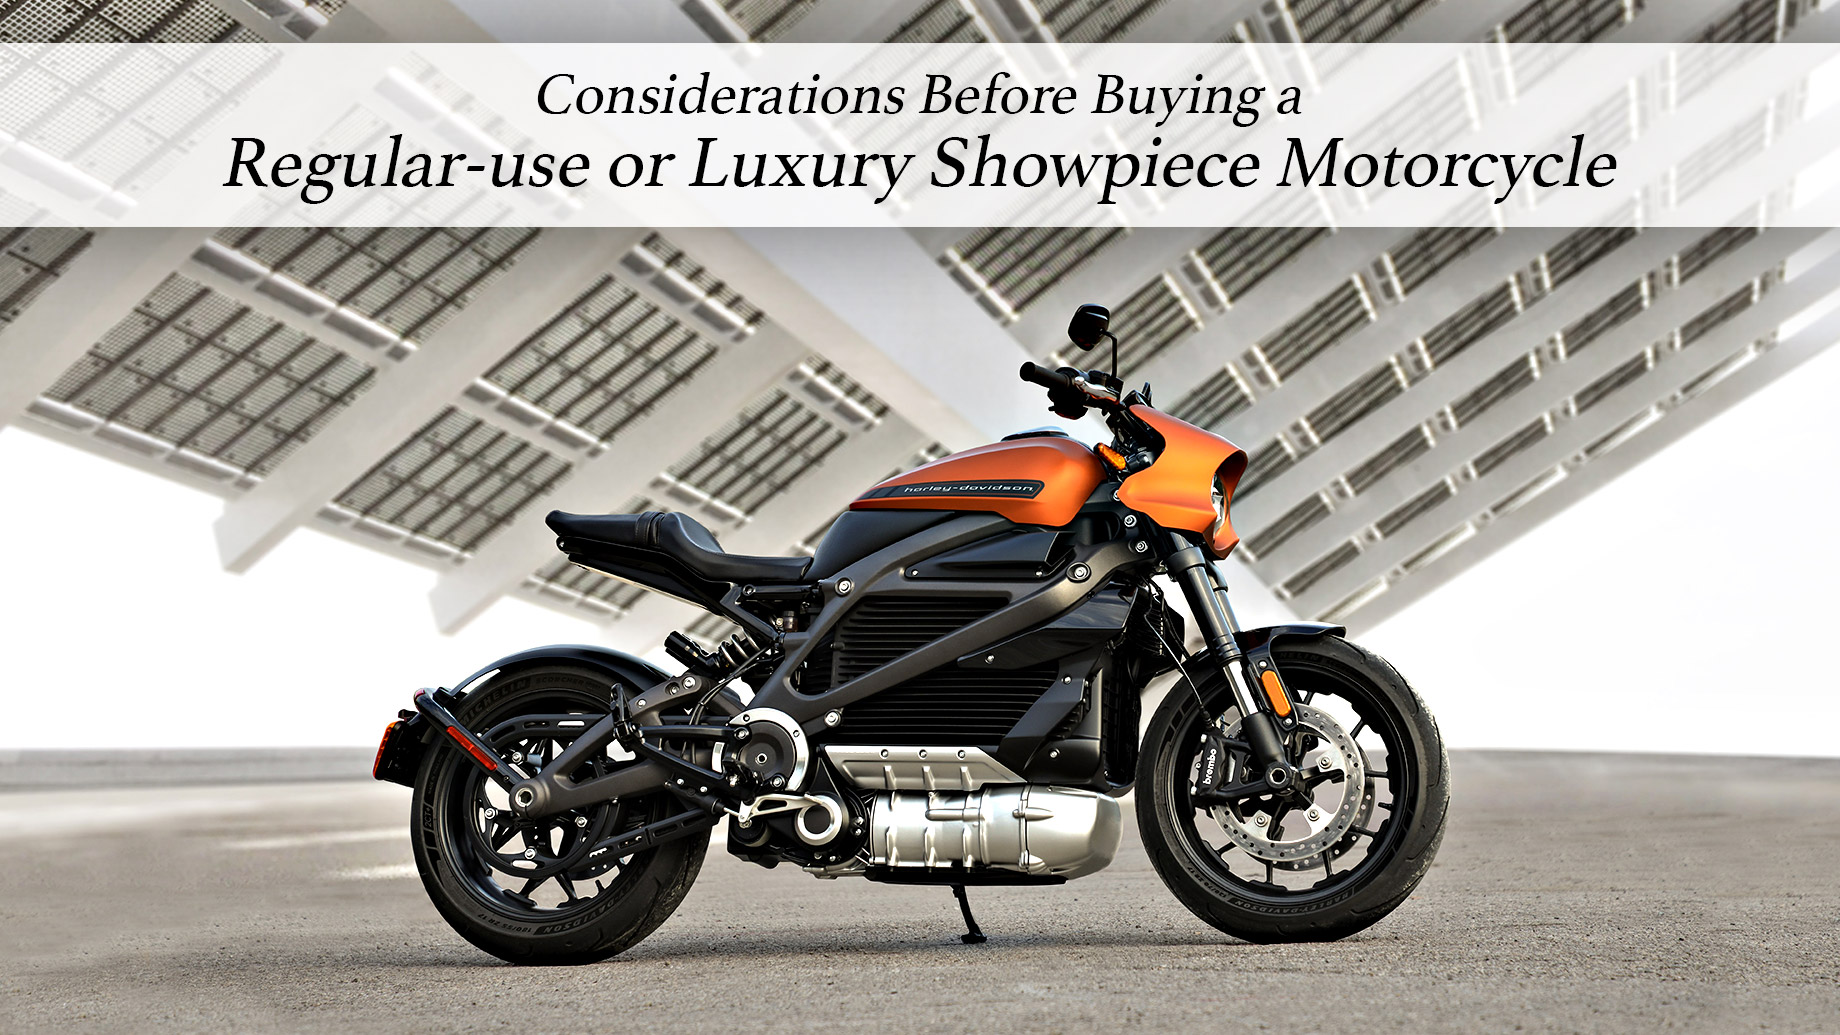 Motorcycle Tips - Considerations Before Buying a Regular-use or Luxury Showpiece Motorcycle